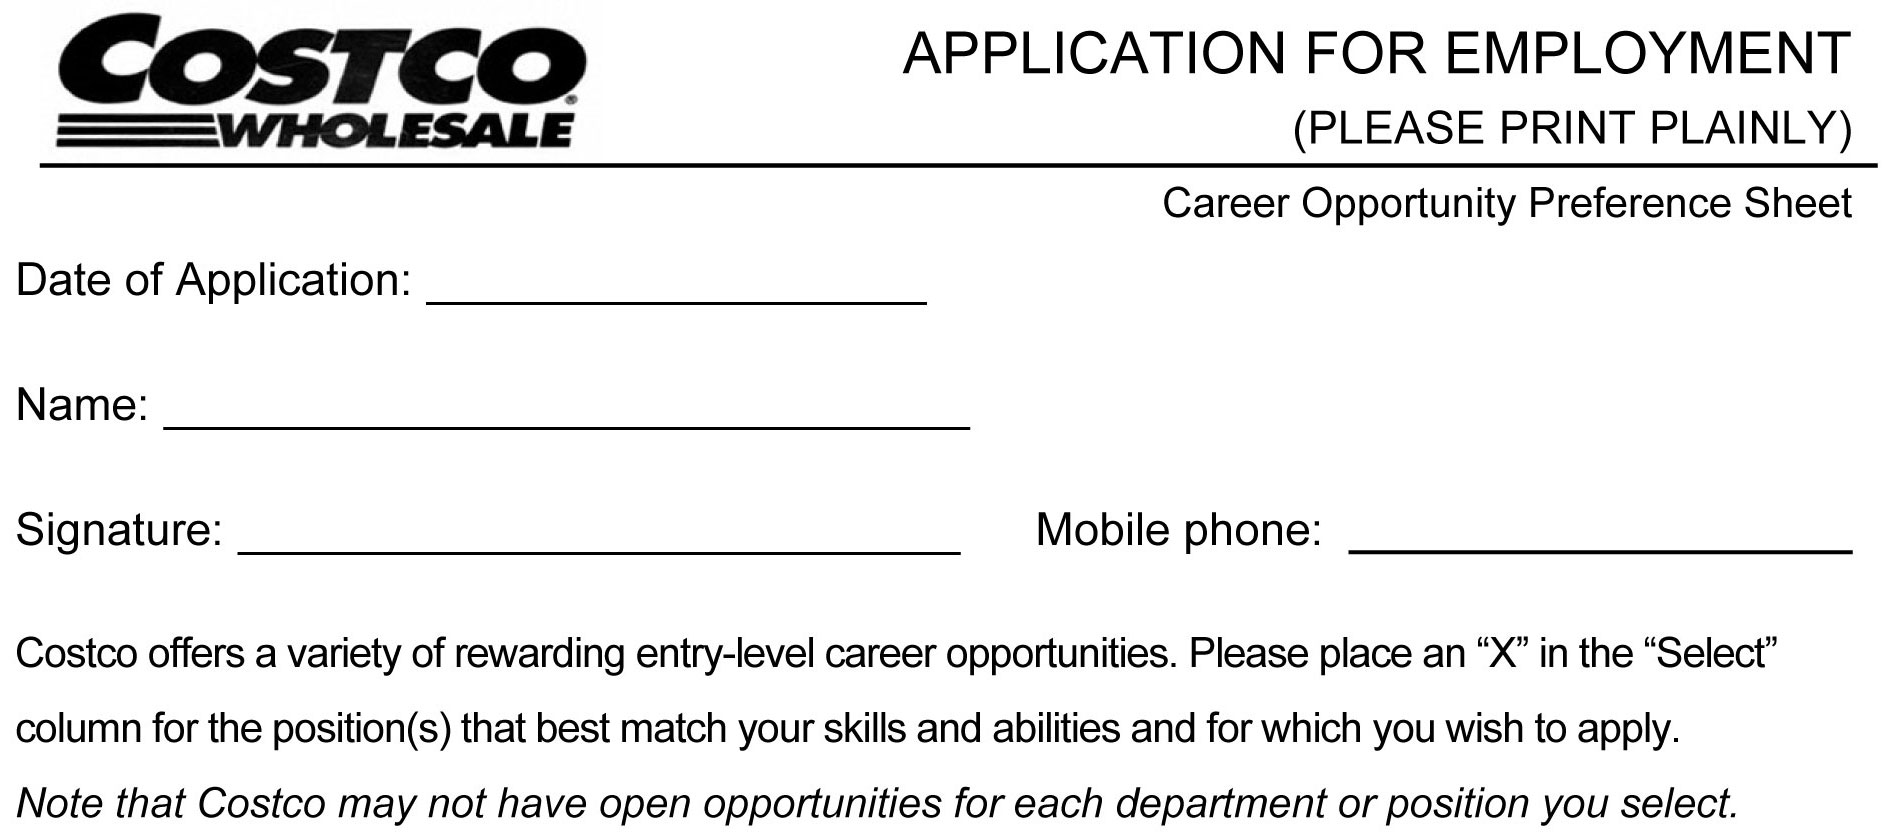 Costco Job Application Printable Job Employment Forms